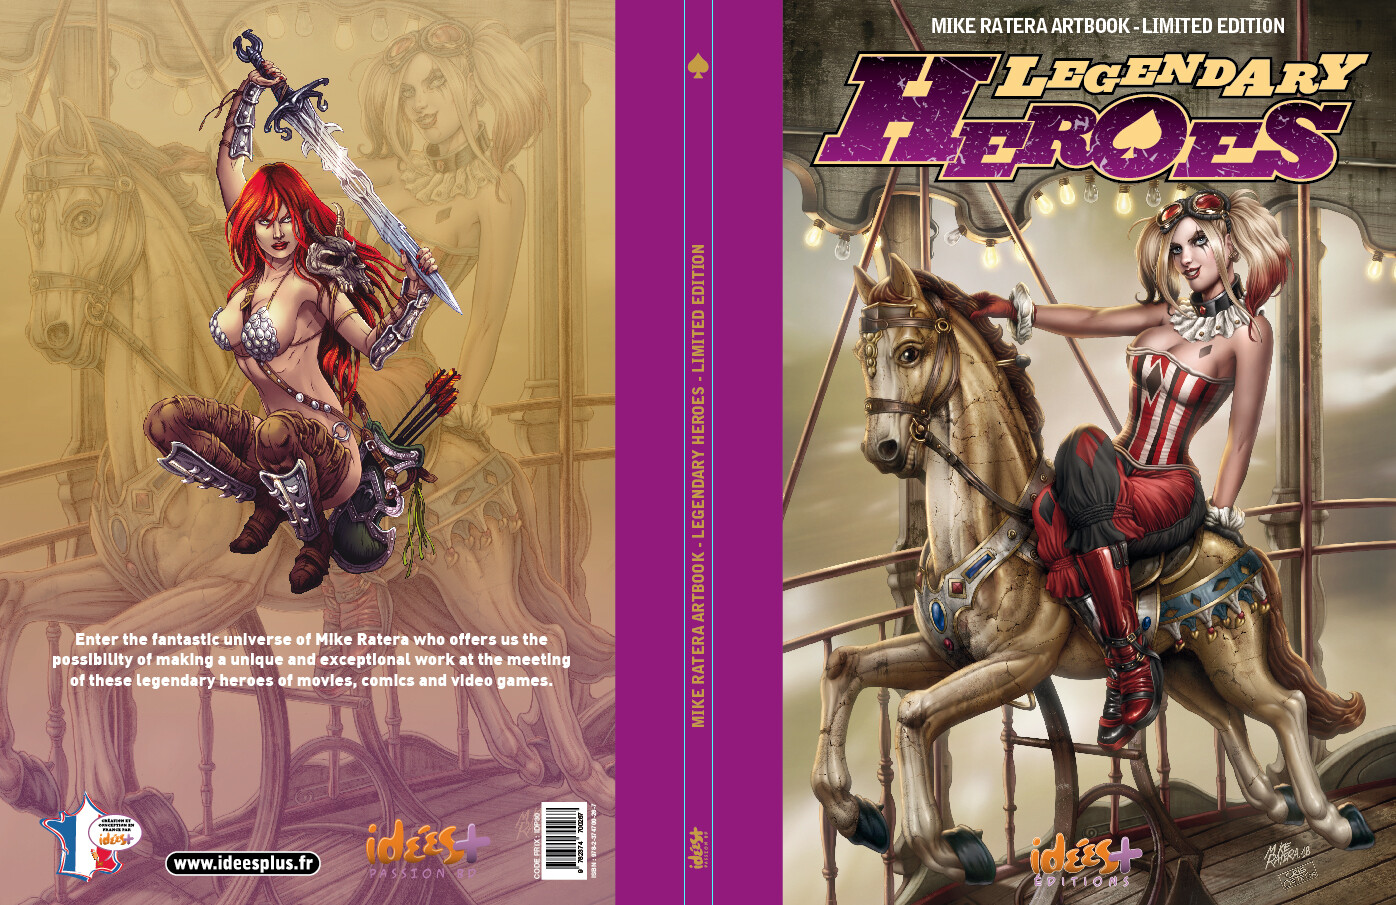 Mike ratera legendary heroes tt cover c1 c4